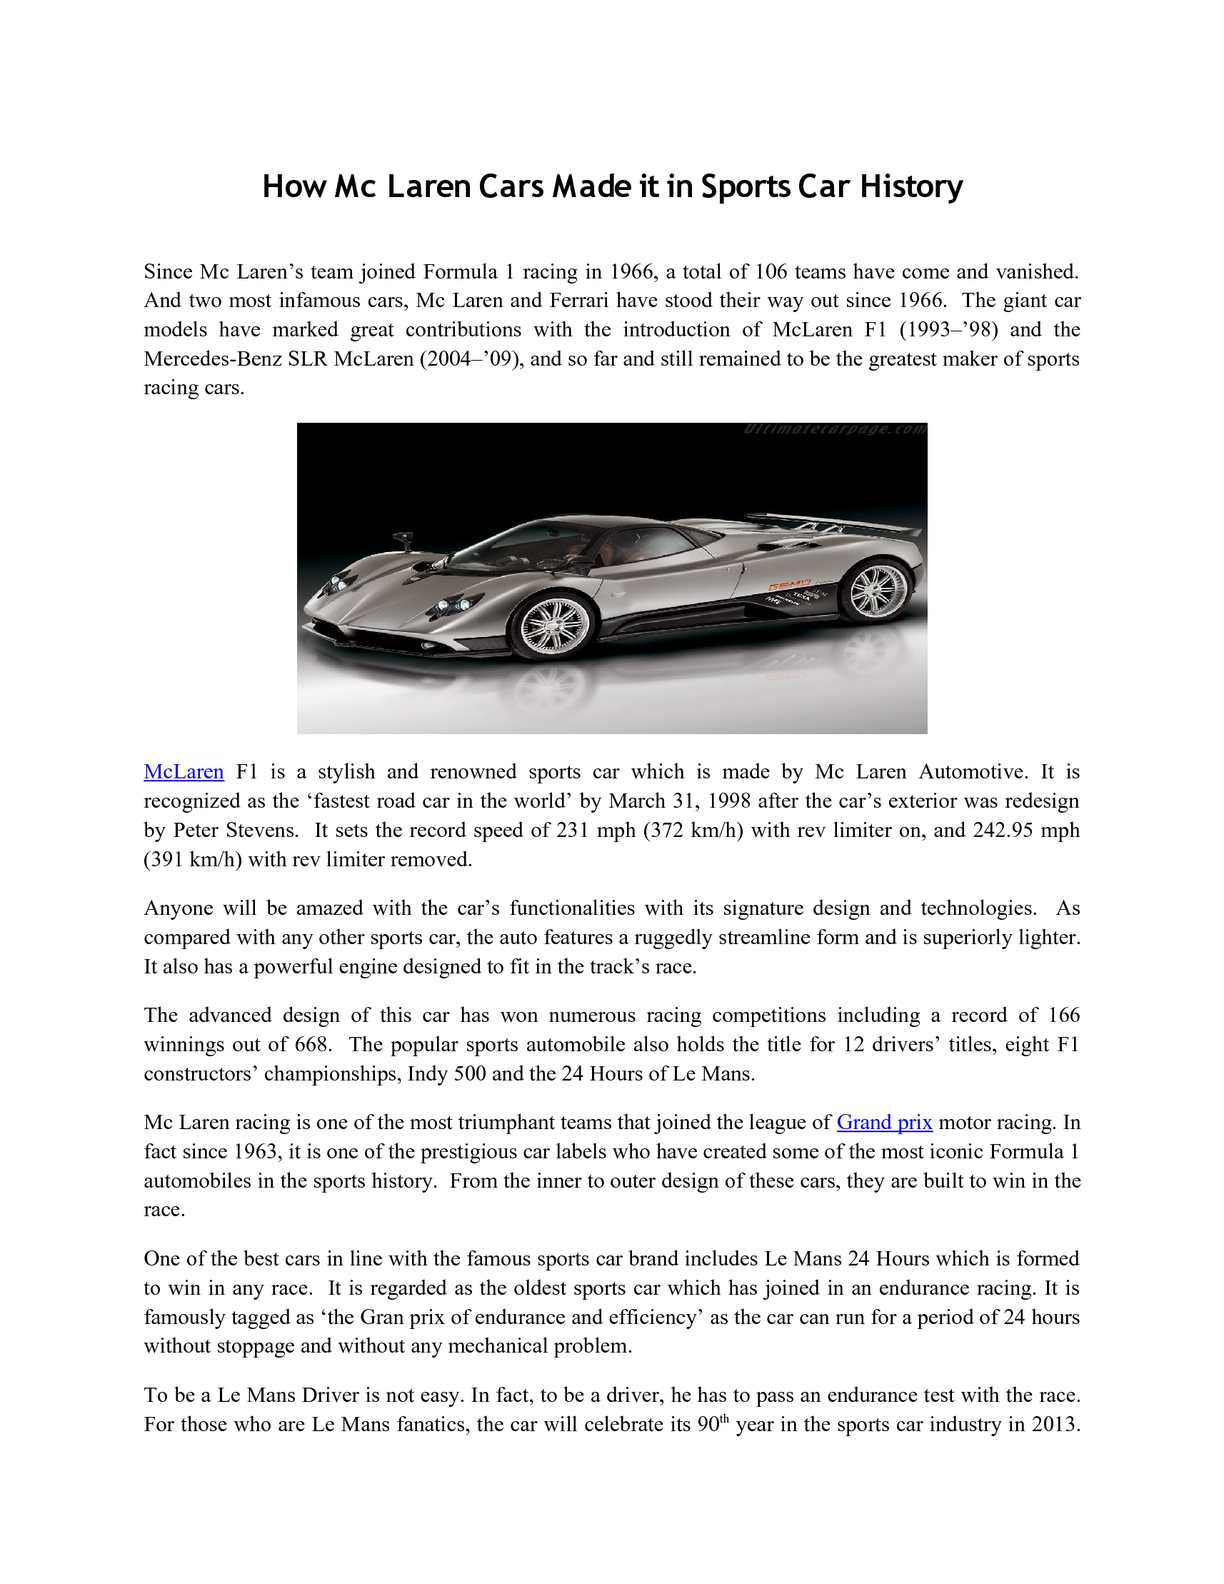 Calaméo - How Mc Laren Cars Made it in Sports Car History